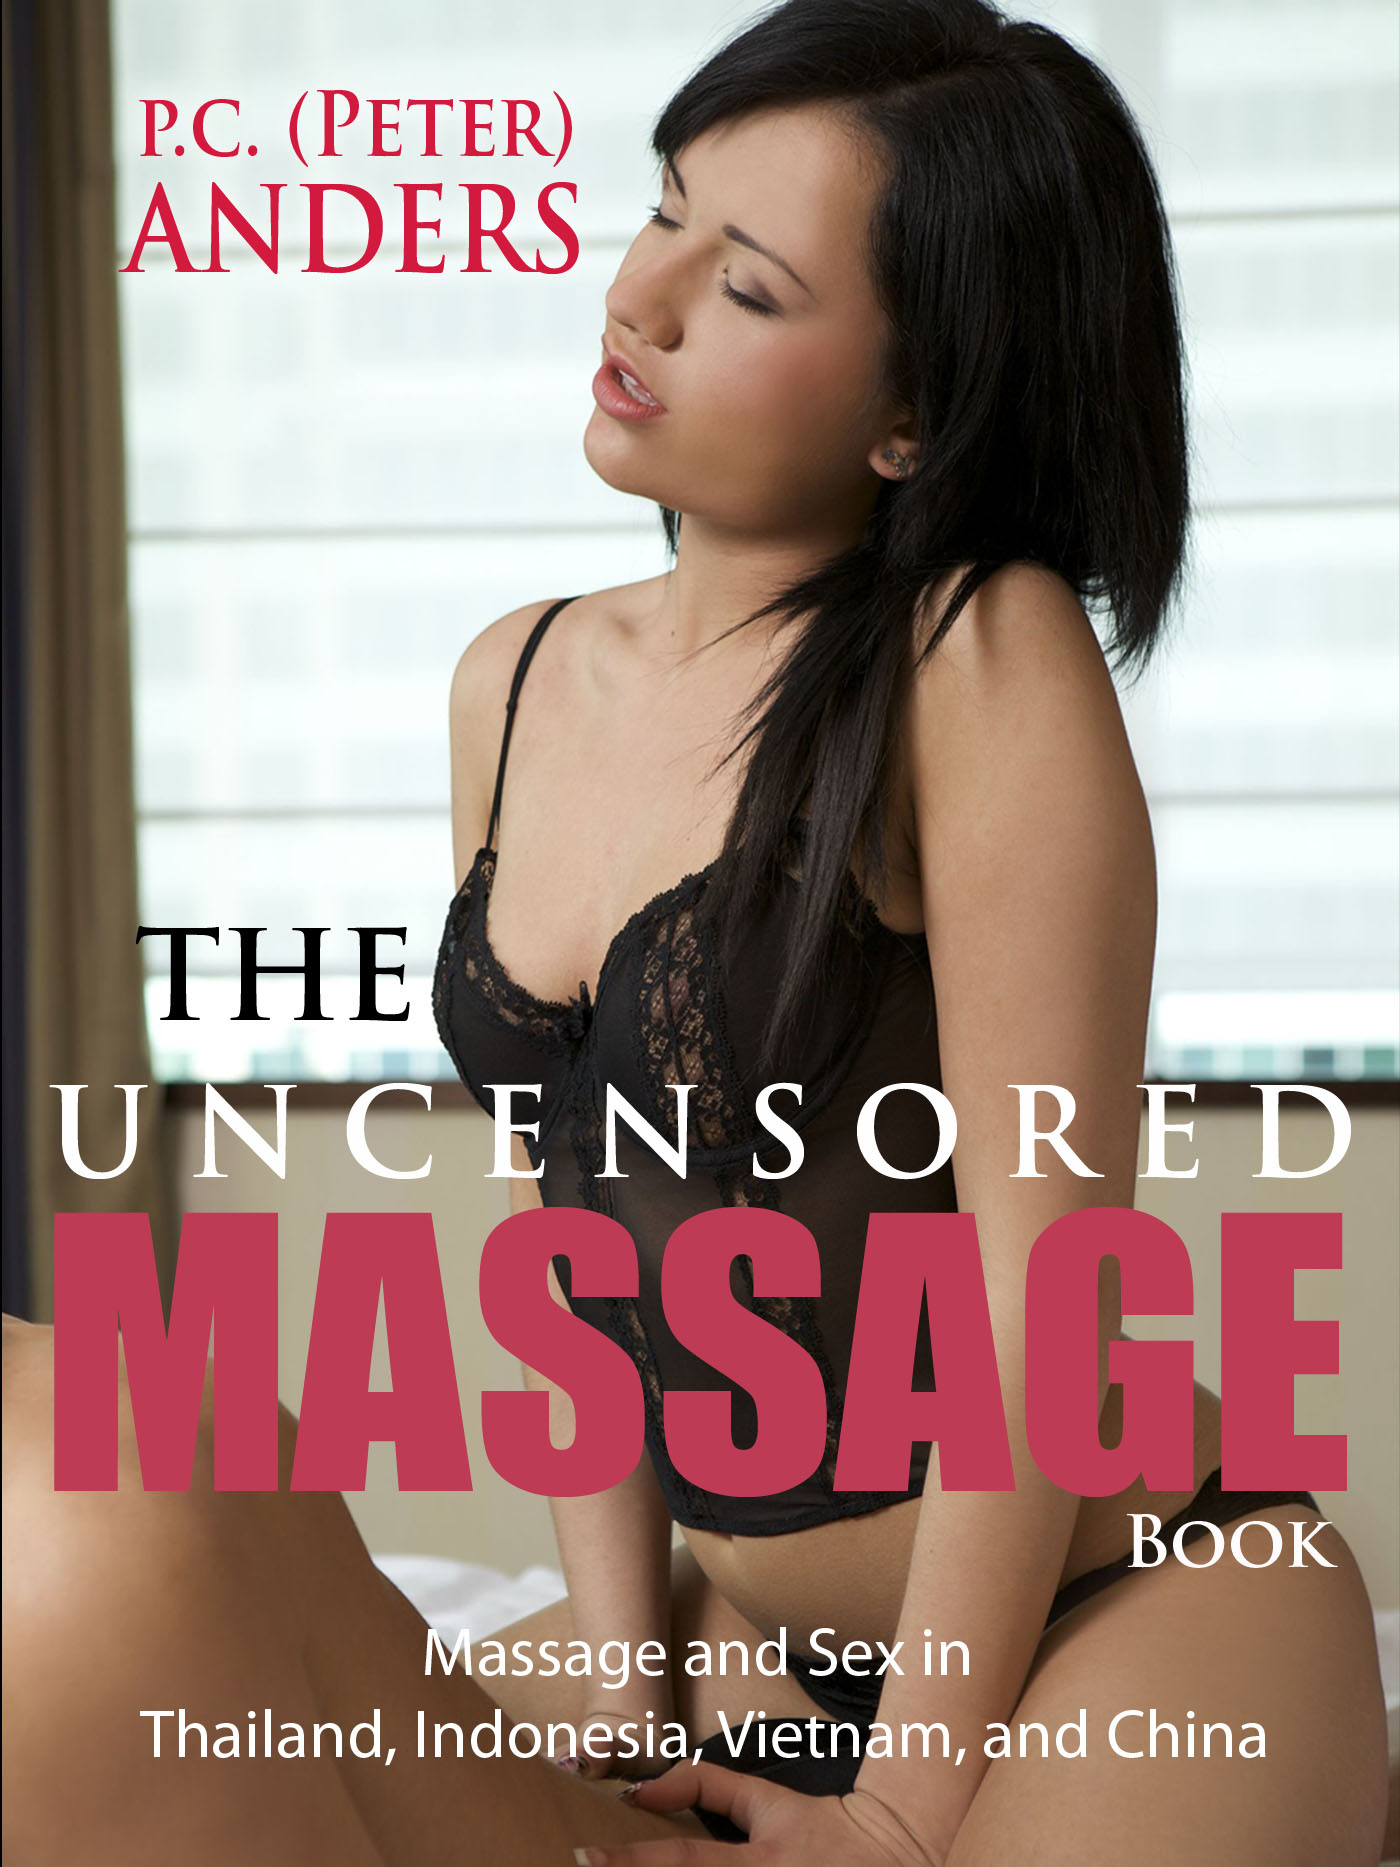 The Uncensored Massage: Thailand, Indonesia, Vietnam, and China By: P.C. Anders